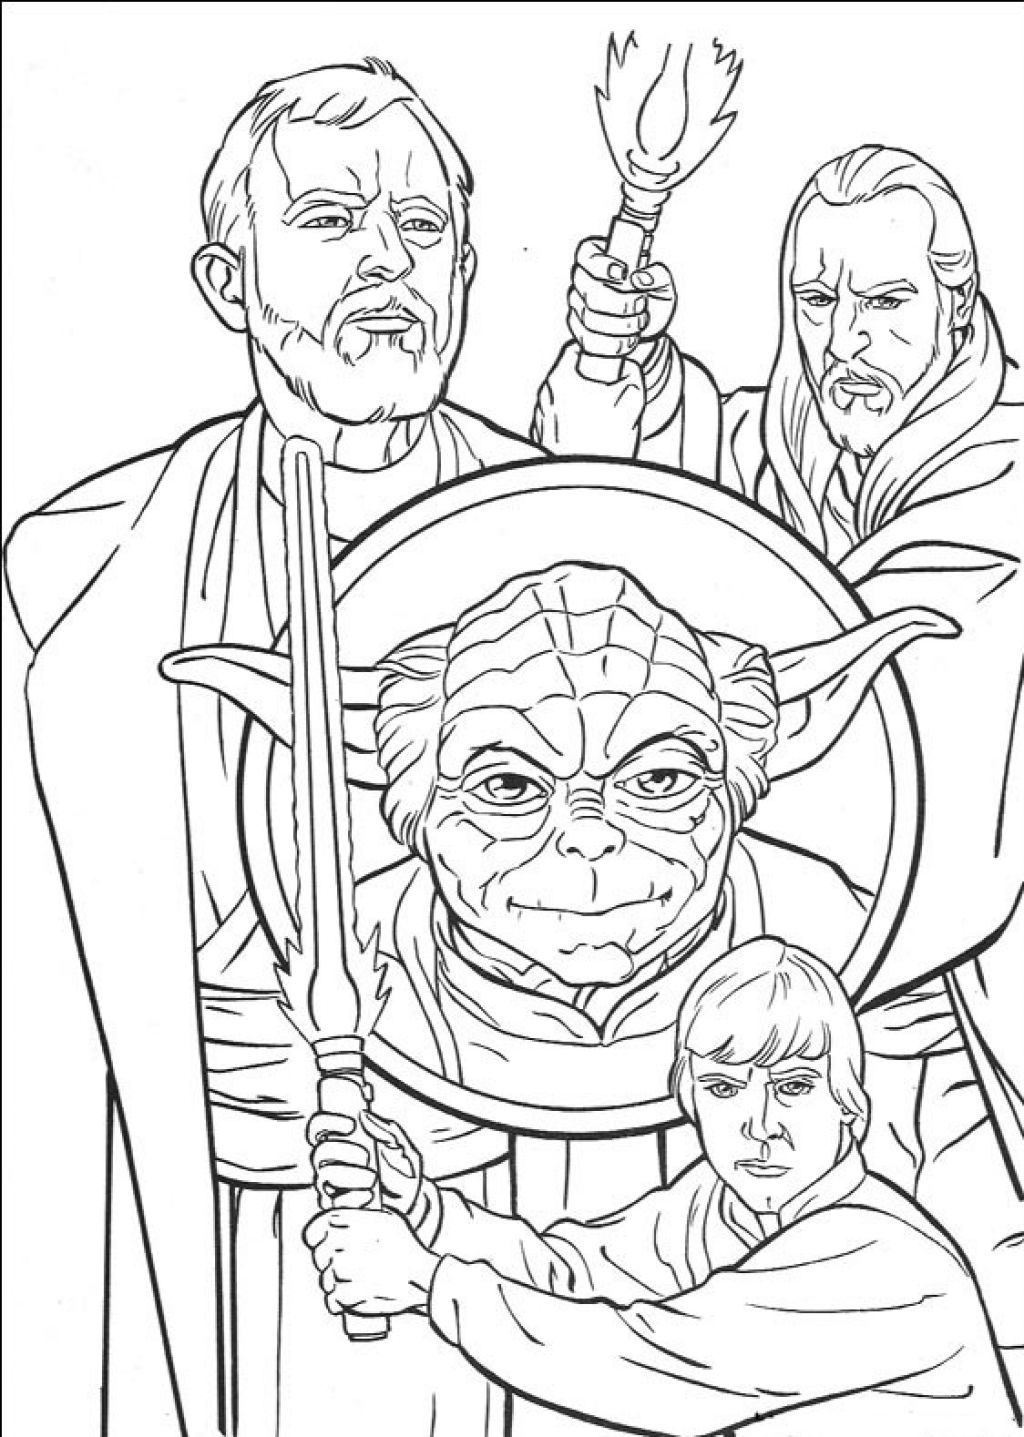 Coloring Pages Star Warsjpg On Thejb Star No 2 Size All